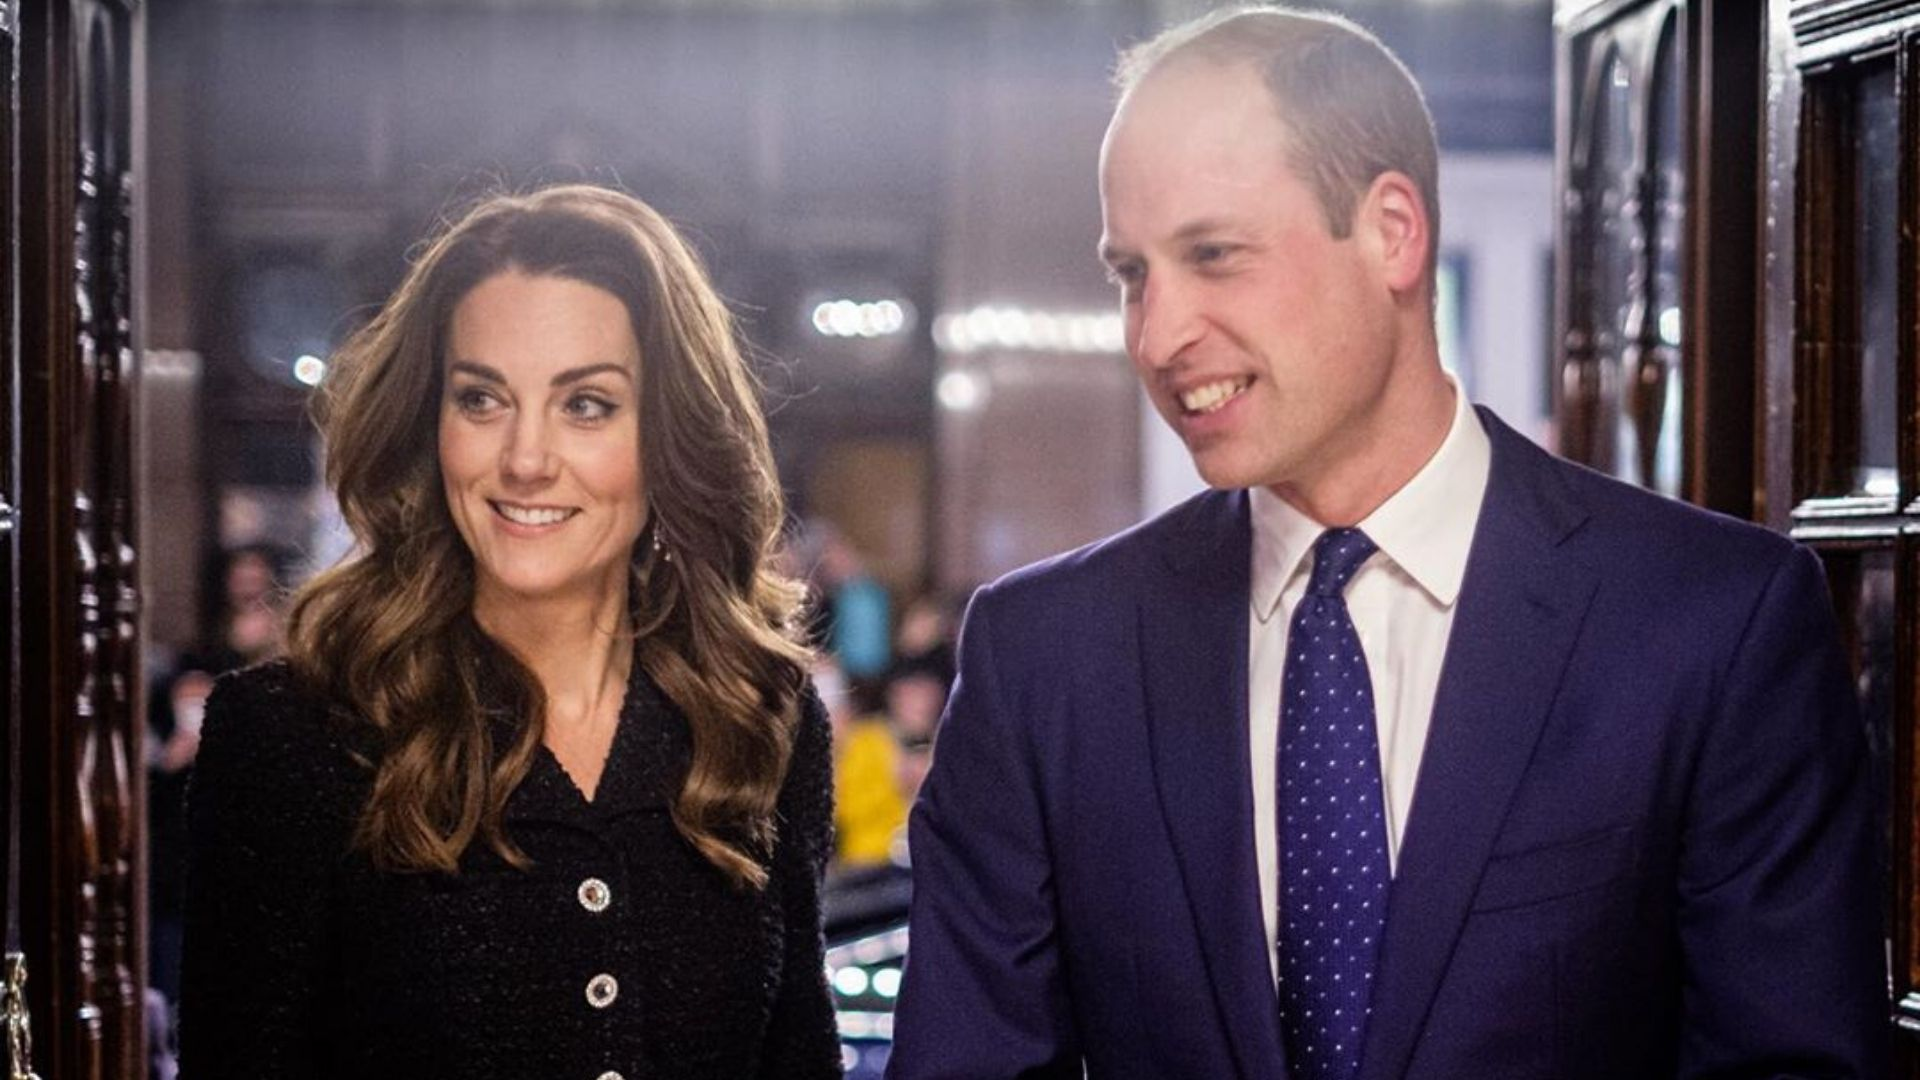 Kate Middleton and Prince William personally call the NHS to say thank you